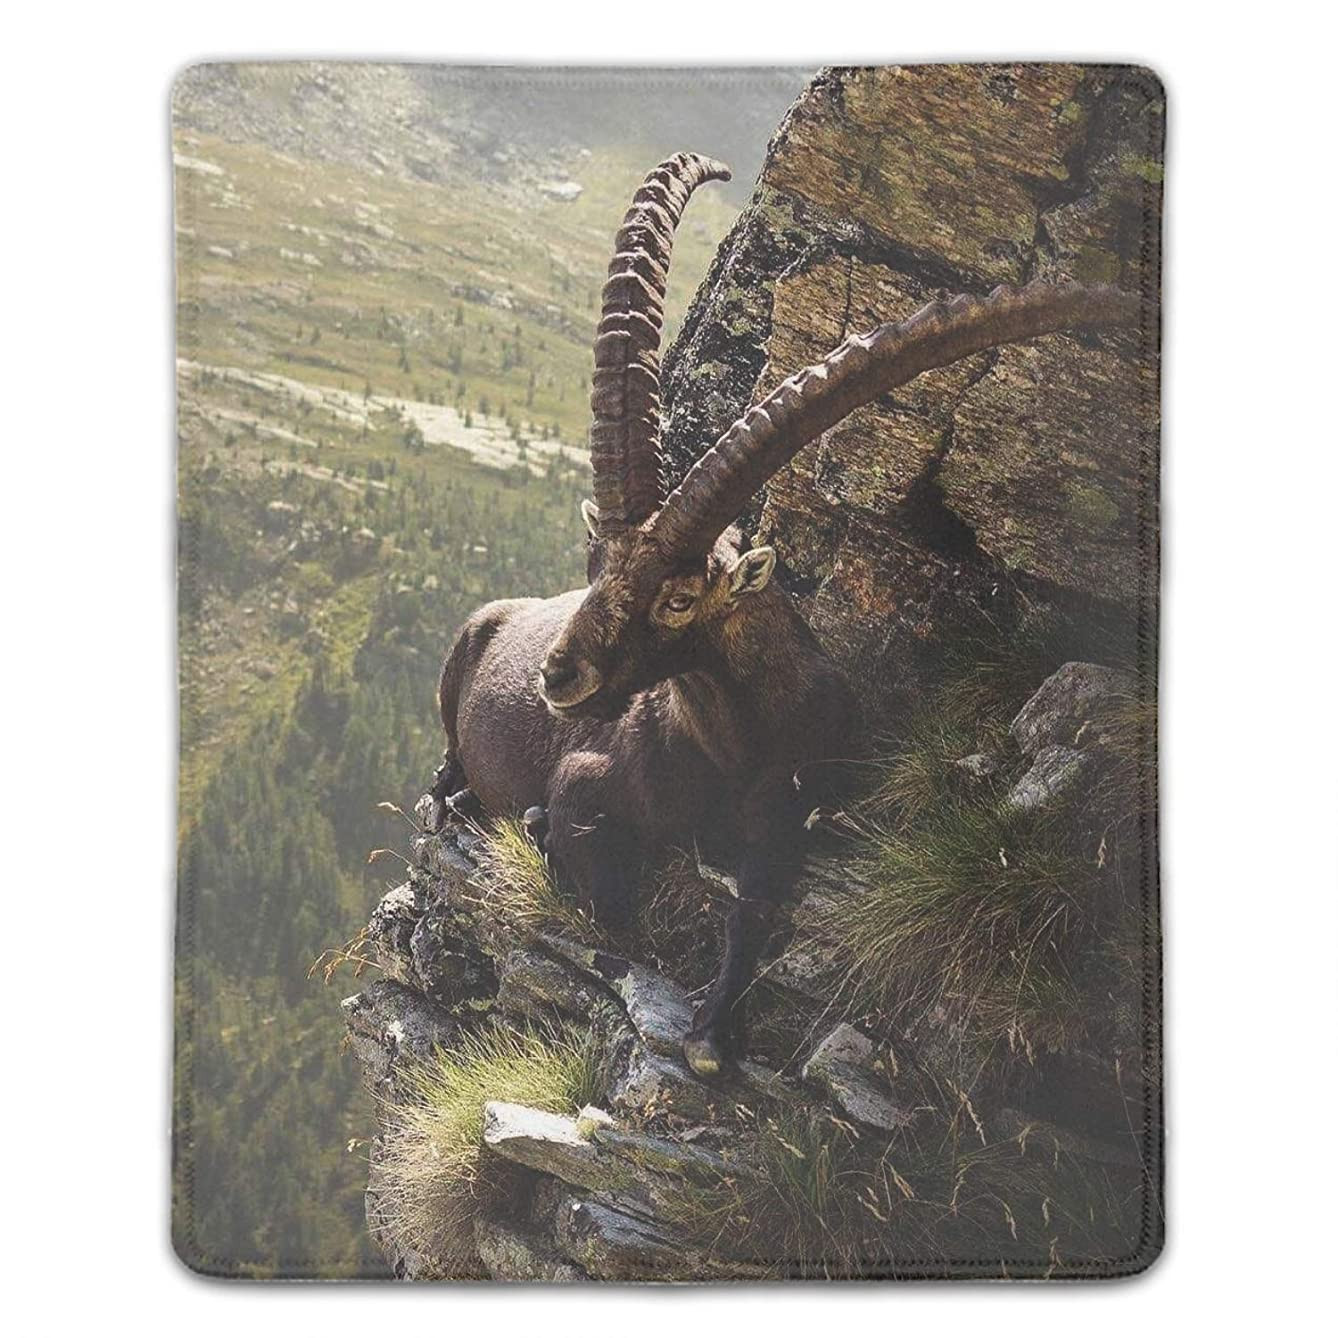 Nature Animals Horns Chamois Landscape Mousepad Game Office Thicker Mouse Pad Decorated Mouse Mat -8.66 x 7.08 inch